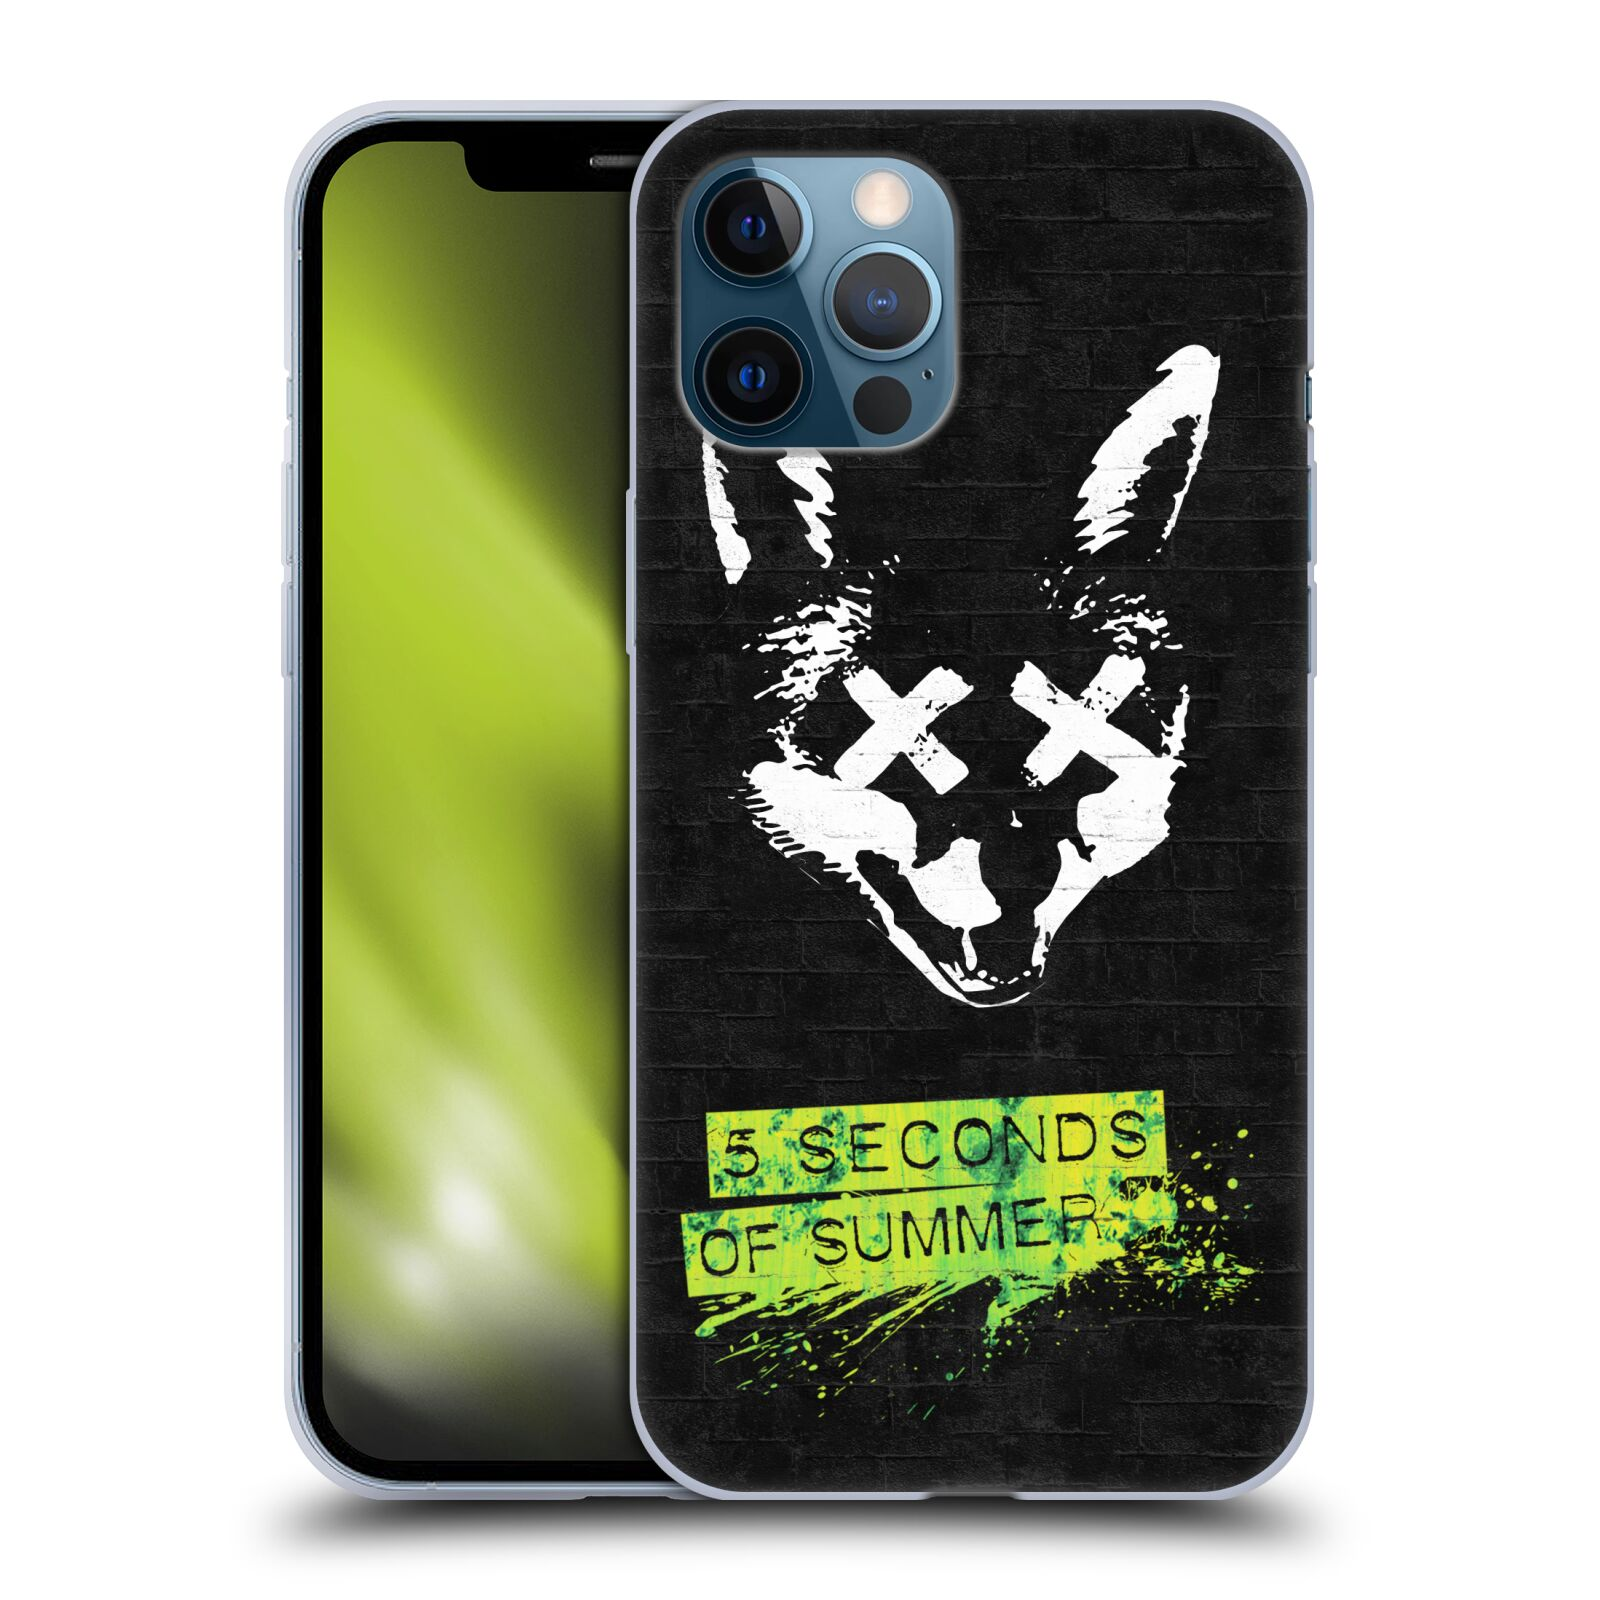 Silikonové pouzdro na mobil Apple iPhone 12 Pro Max - Head Case - 5 Seconds of Summer - Fox